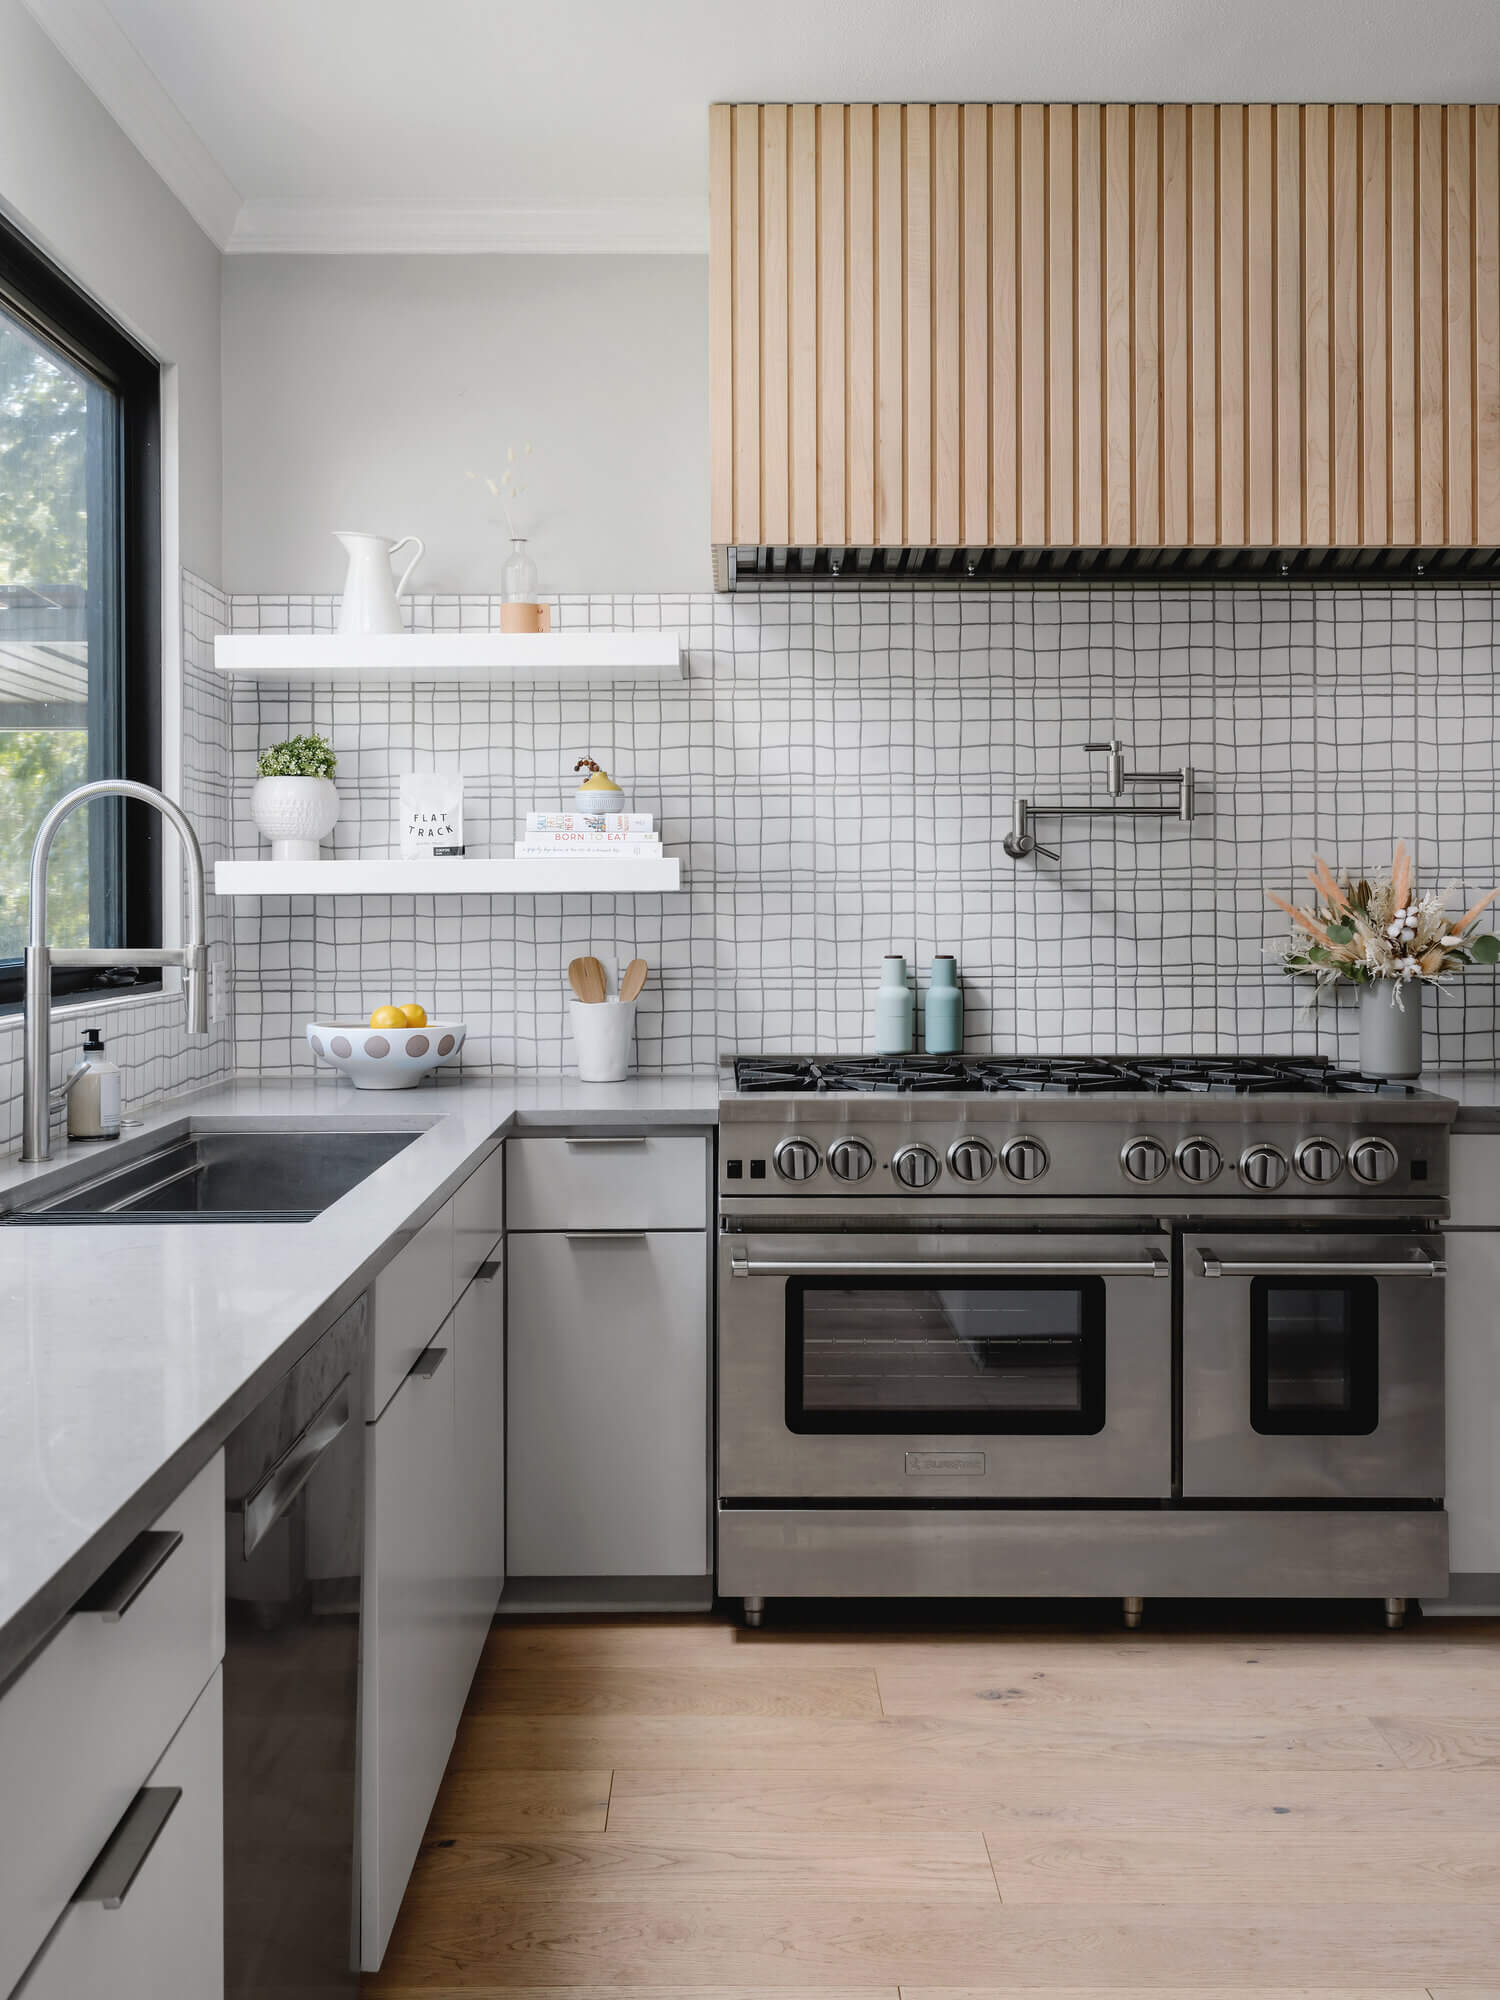 Eichler paneling is a popular MCM design element that can be used indoors like this kitchen range hood.